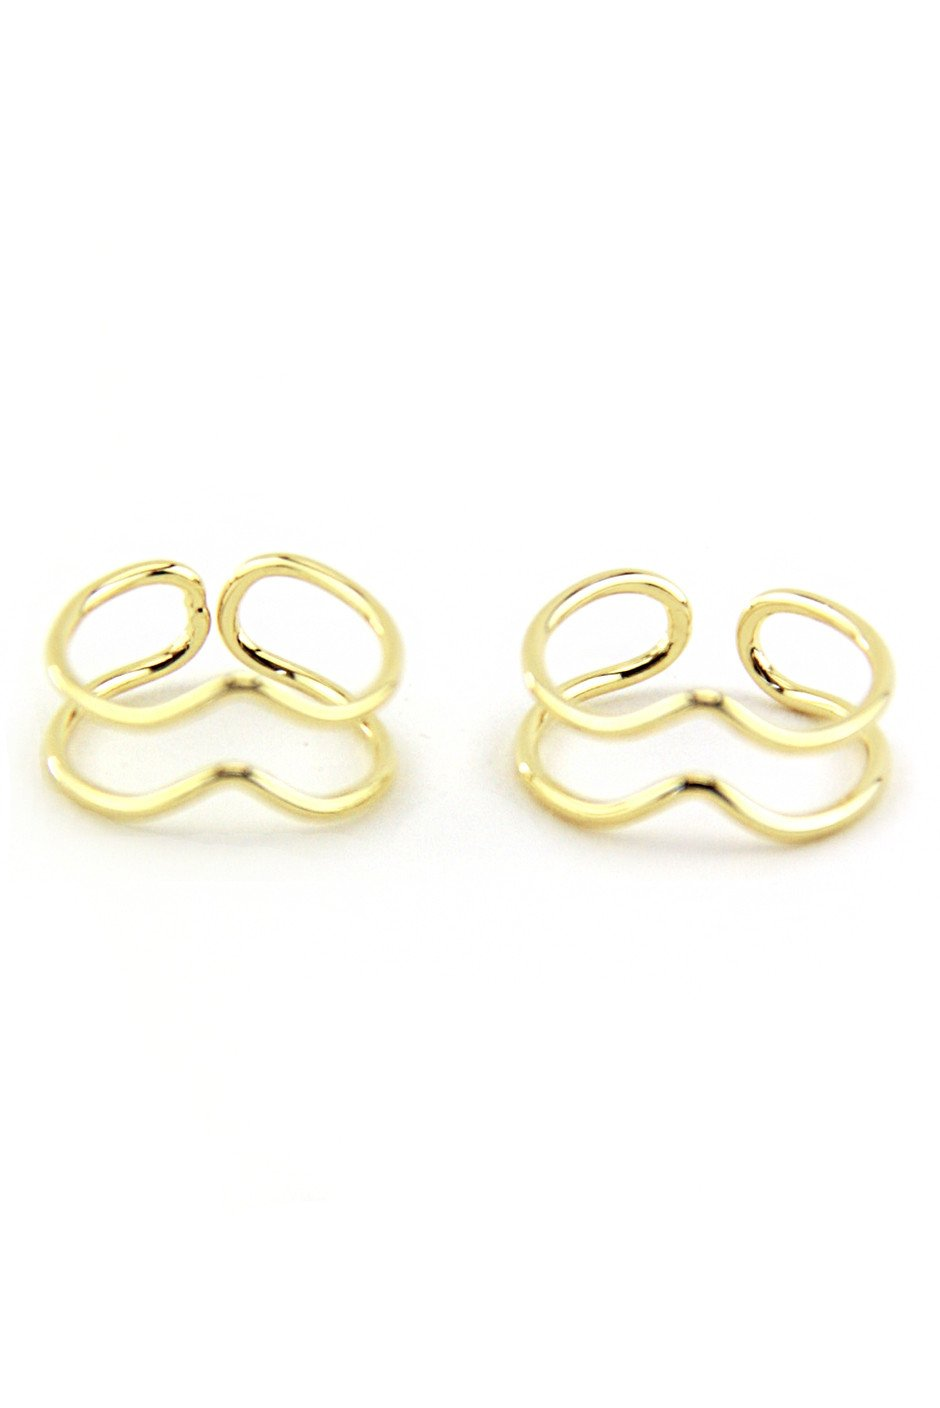 DUAL PETITE CUTOUT RINGS - Gold - Haute & Rebellious